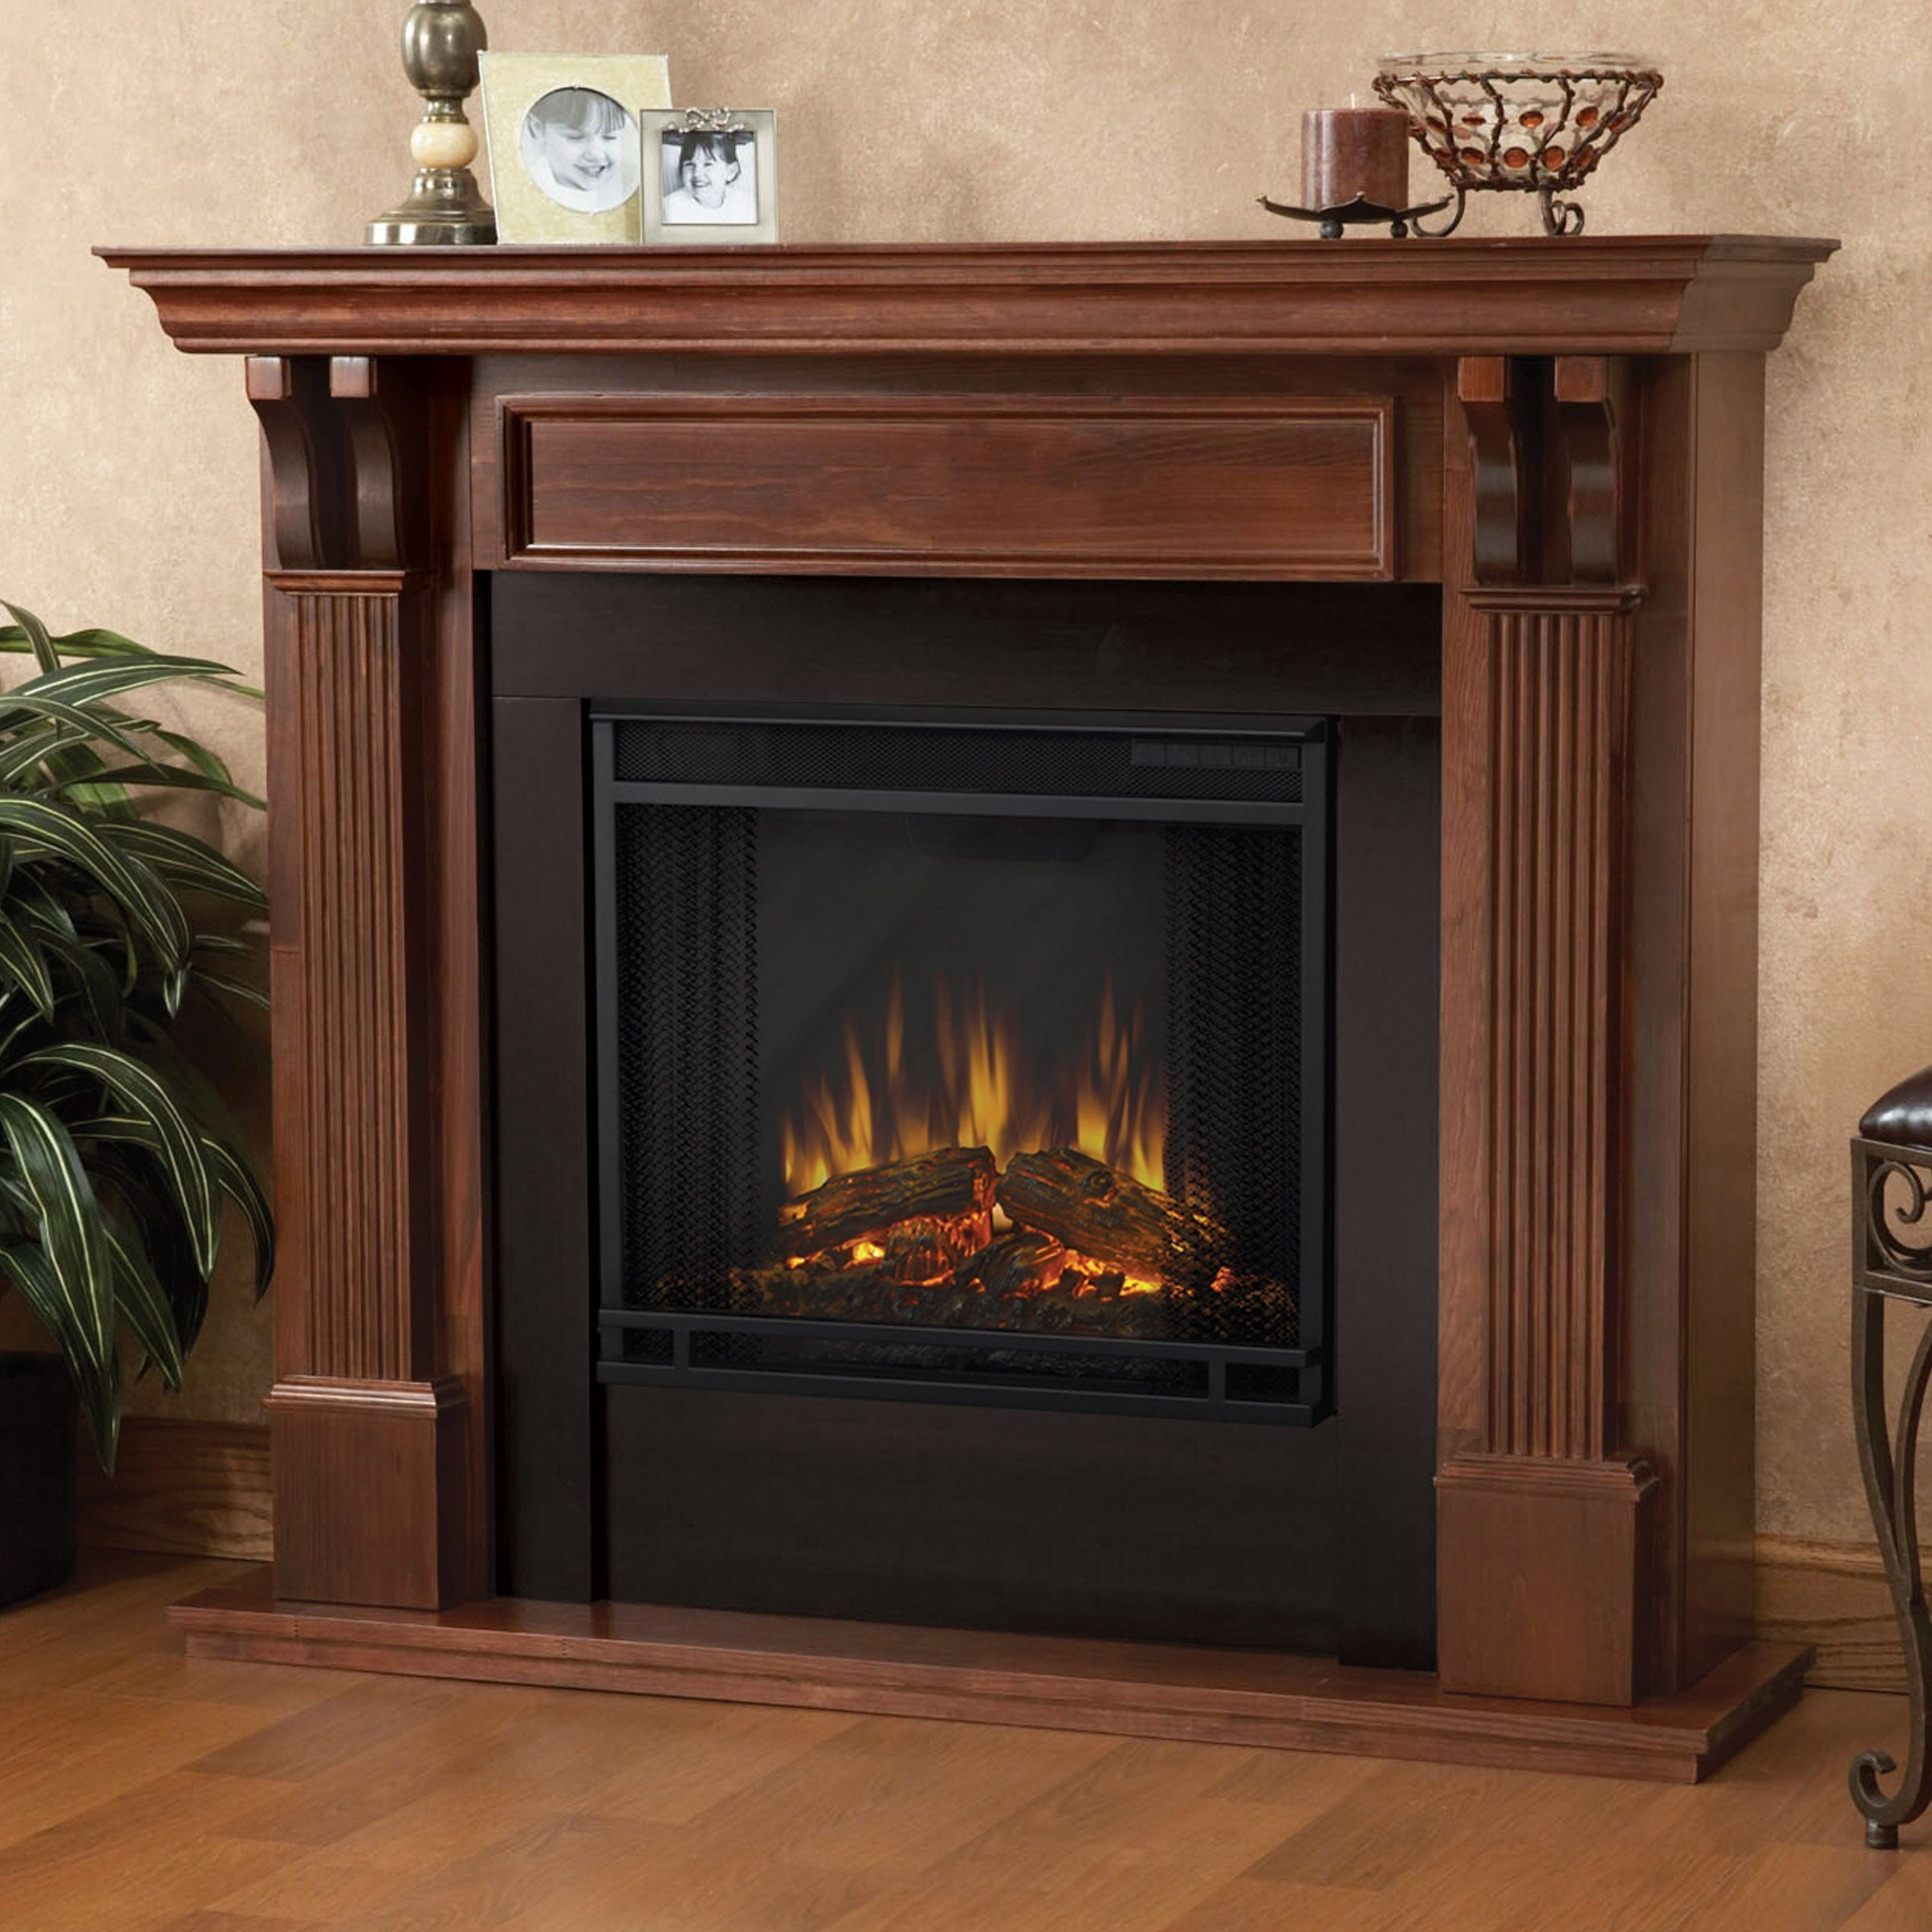 Fireplace amp tv stand in premium cherry finish with 23ef025gra electric - Offering Handsome Looks Thanks To A Deep Rich Finish This Real Flame Mahogany Indoor Fireplaceselectric